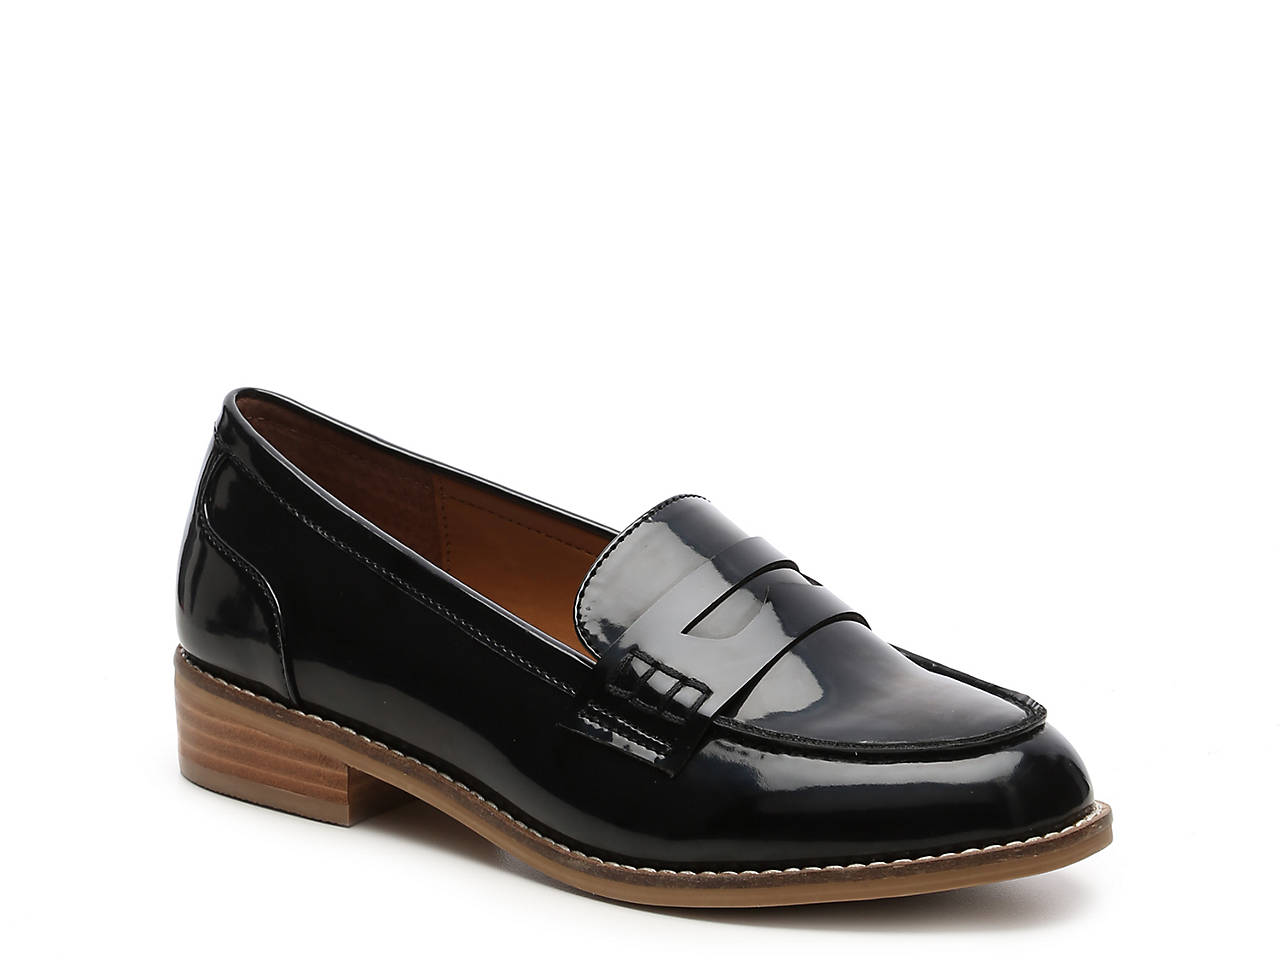 Cyylo Loafer